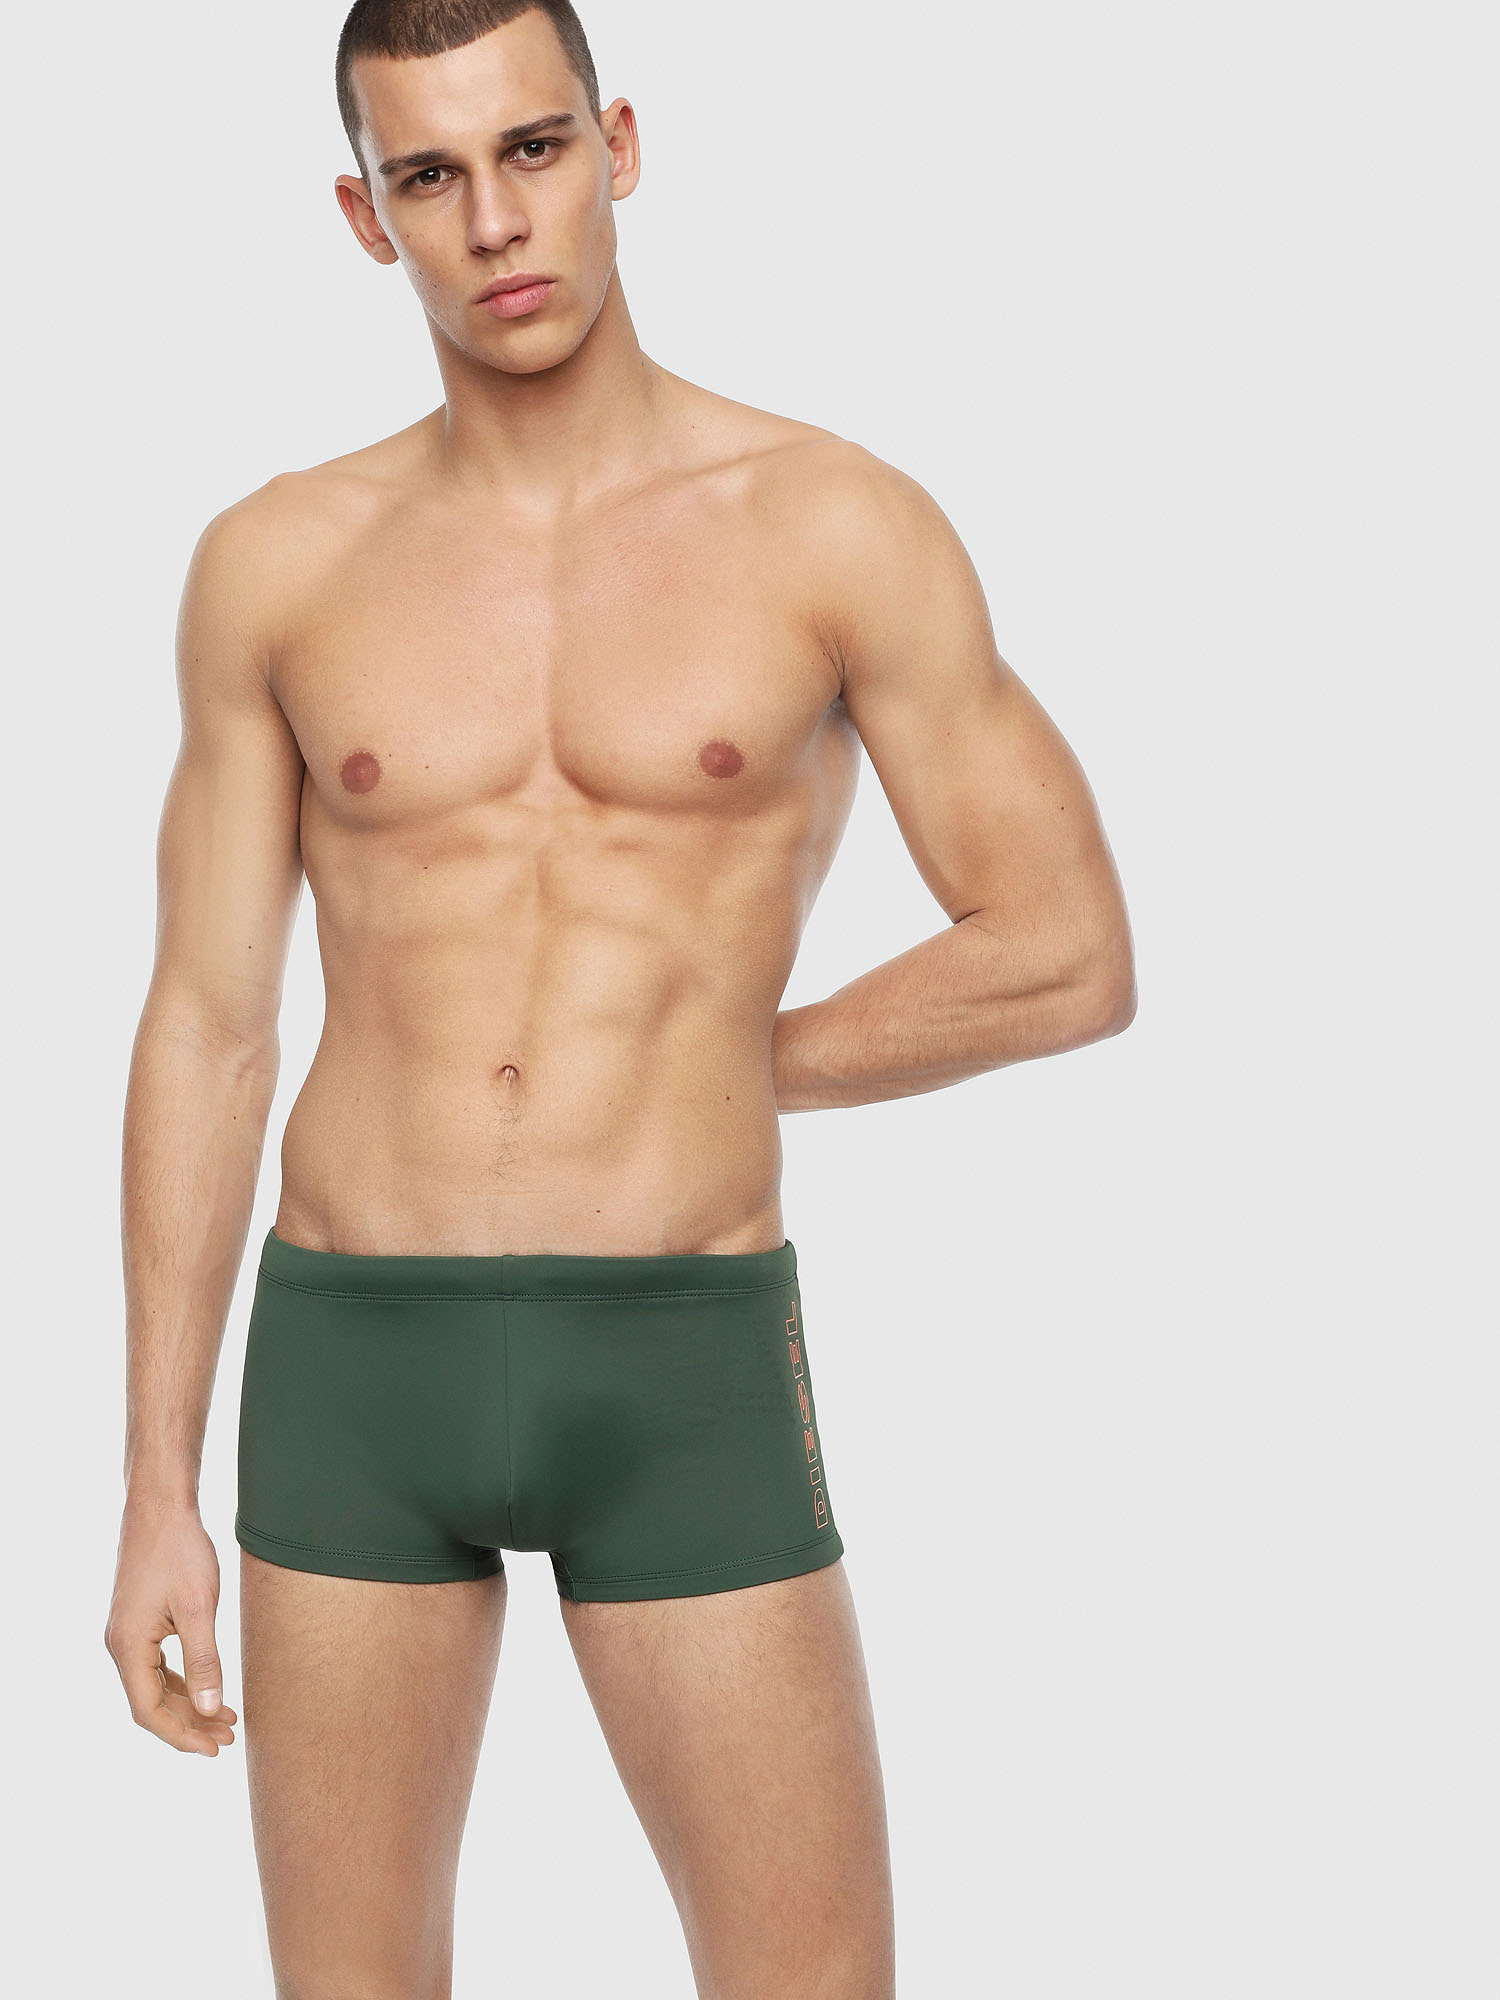 Diesel - BMBX-HERO,  - Swim trunks - Image 1